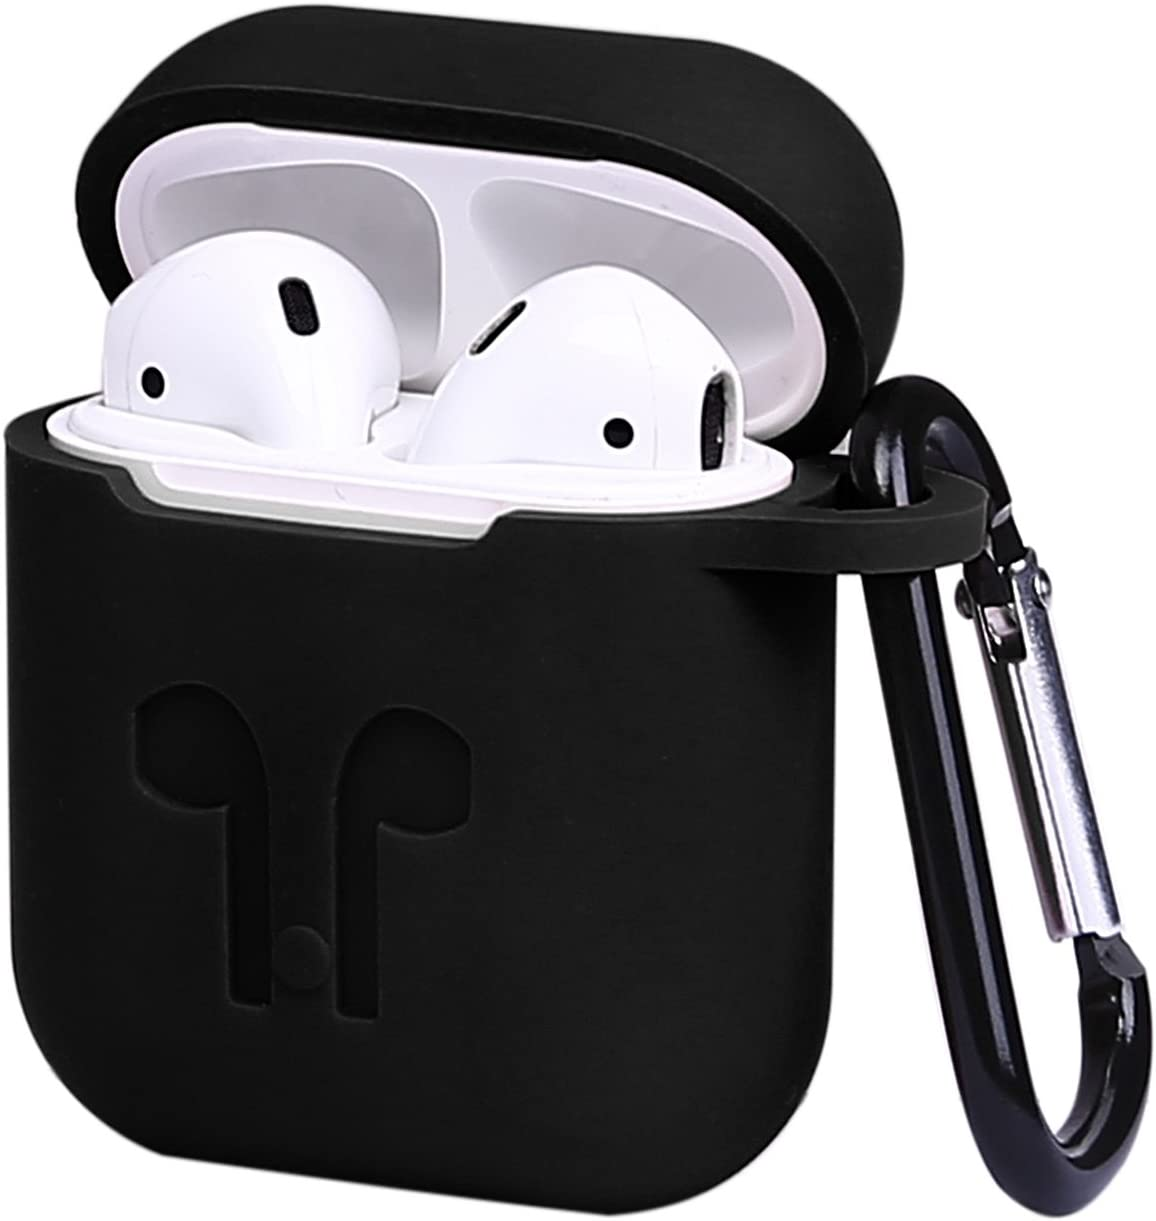 HDE AirPod Cover for Apple AirPods 2 1 Protective Silicone Air Pod Case Cover for 1st 2nd Generation Air Pods (Black, Red, Pink, Blue)